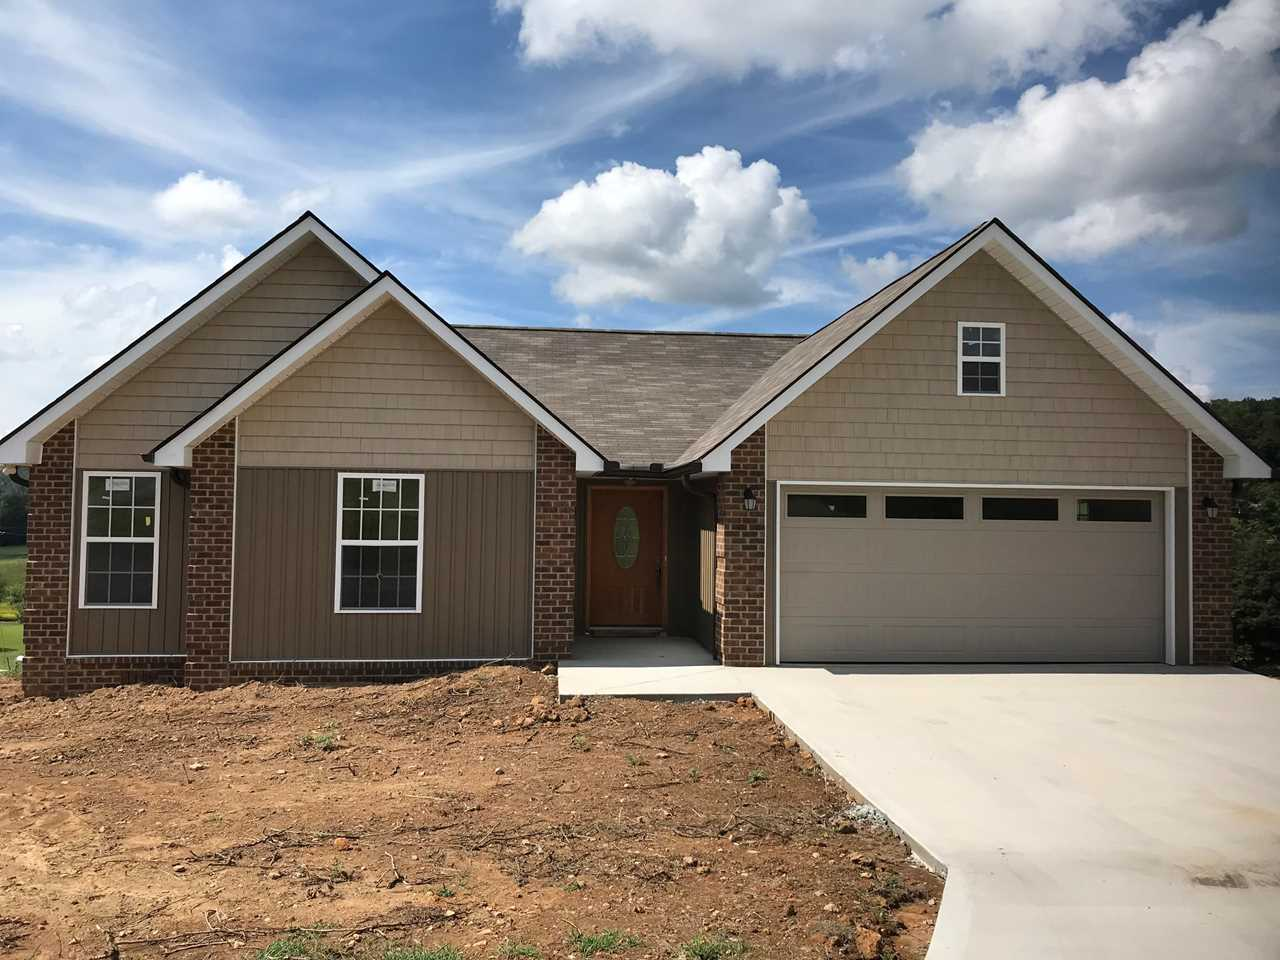 119 Valley View Maynardville TN 37807 in Lay Acres | MLS 1056170 - GreatLifeRE.com Photo 1